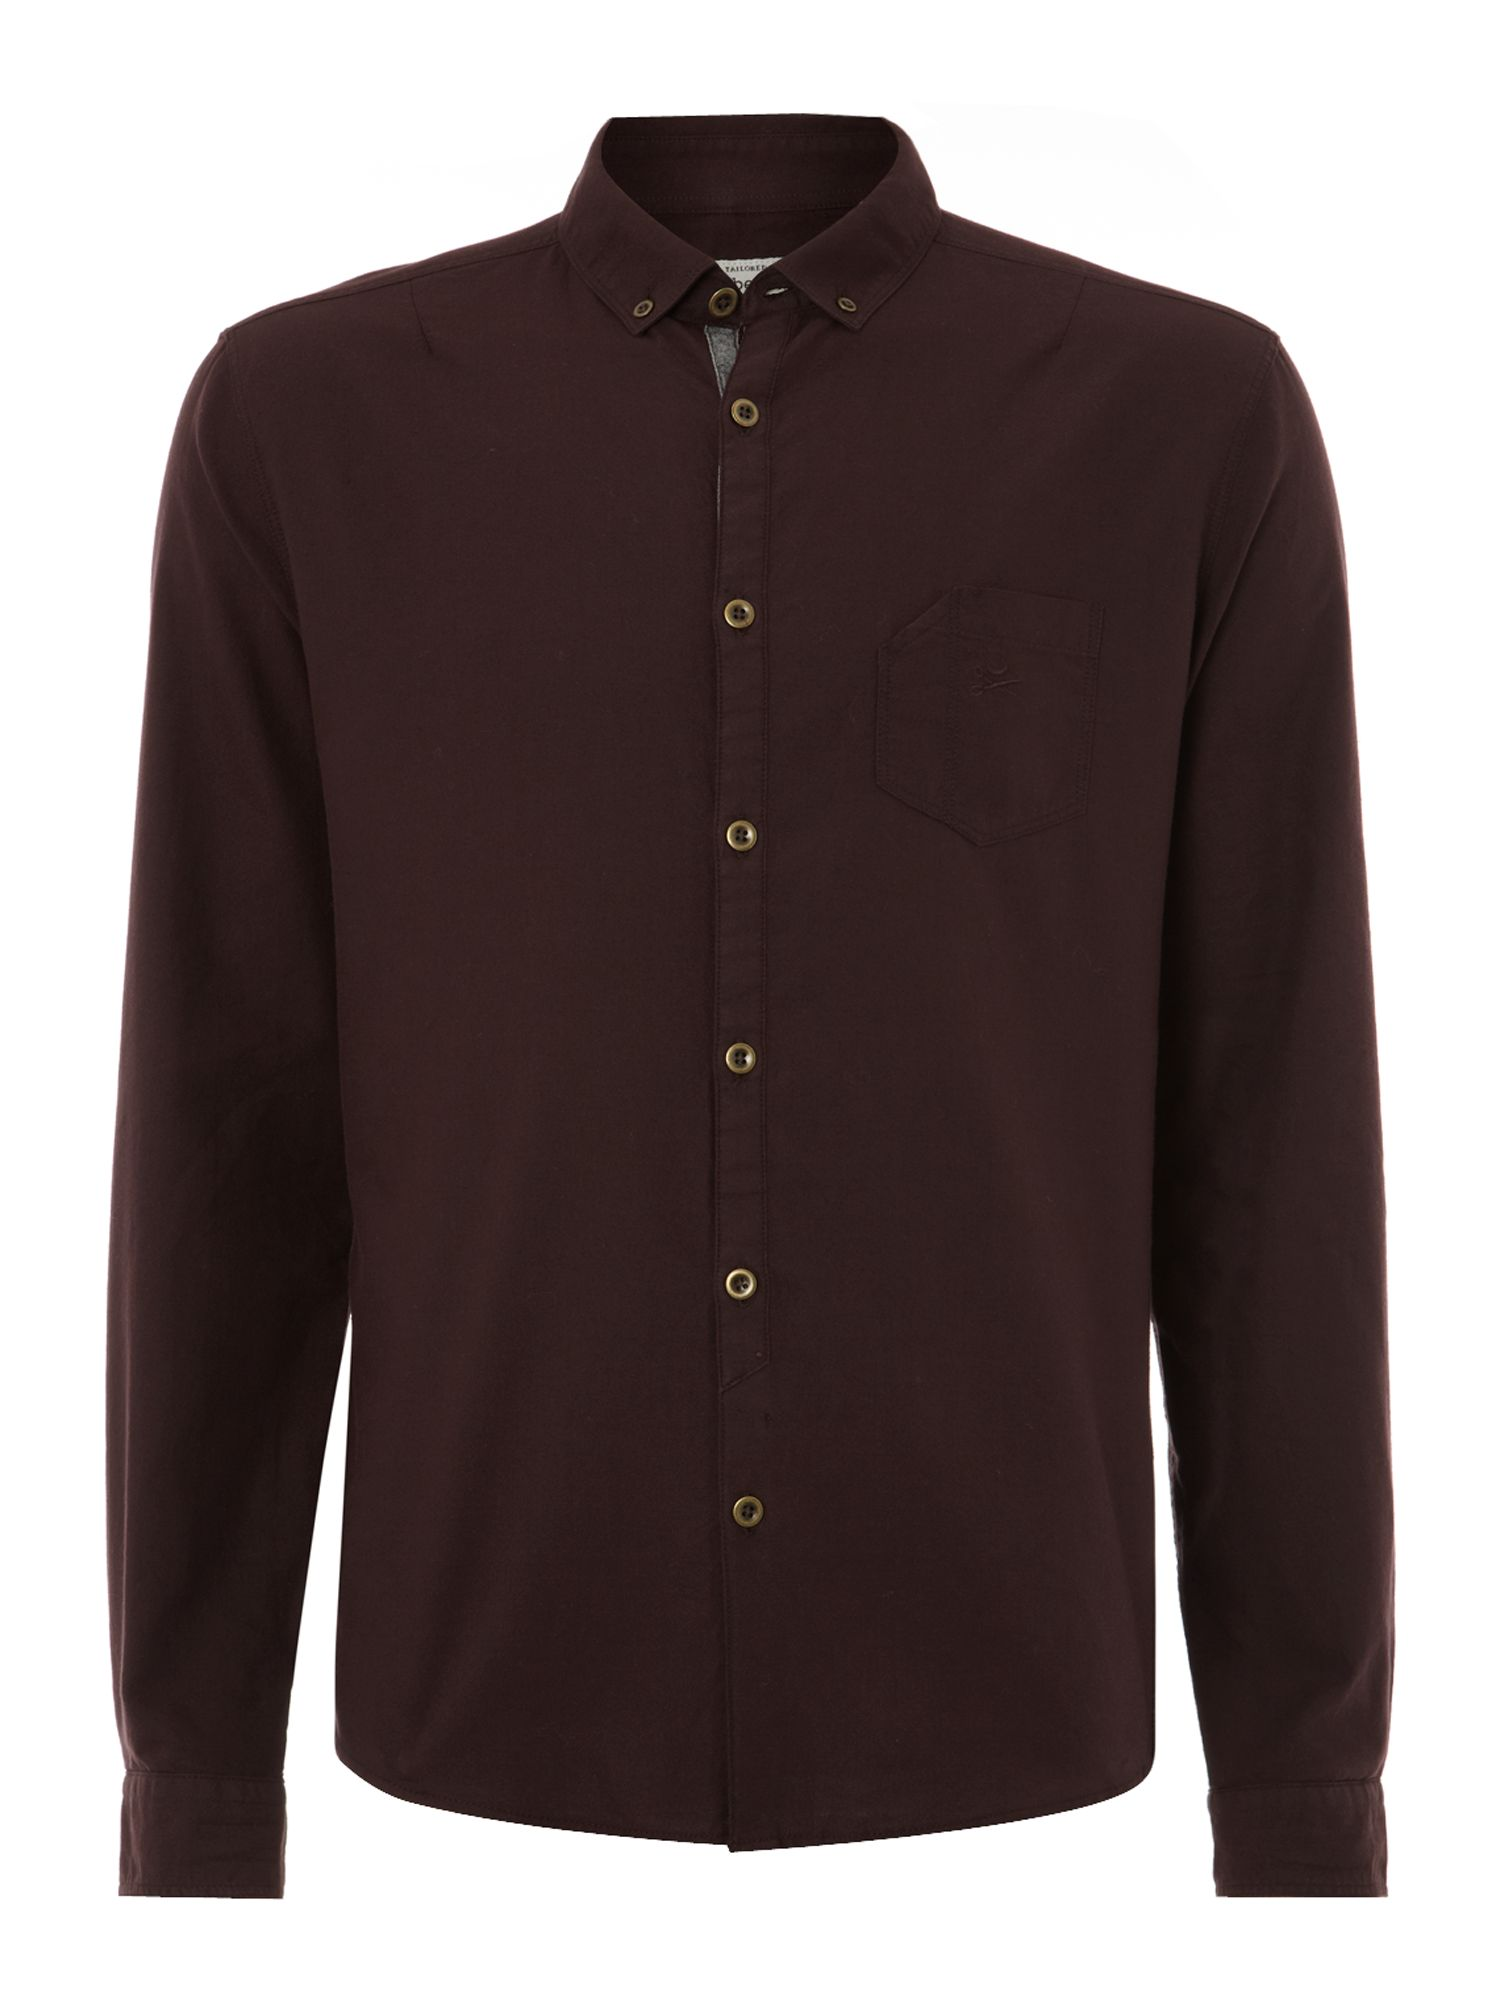 Pattle grape twill shirt